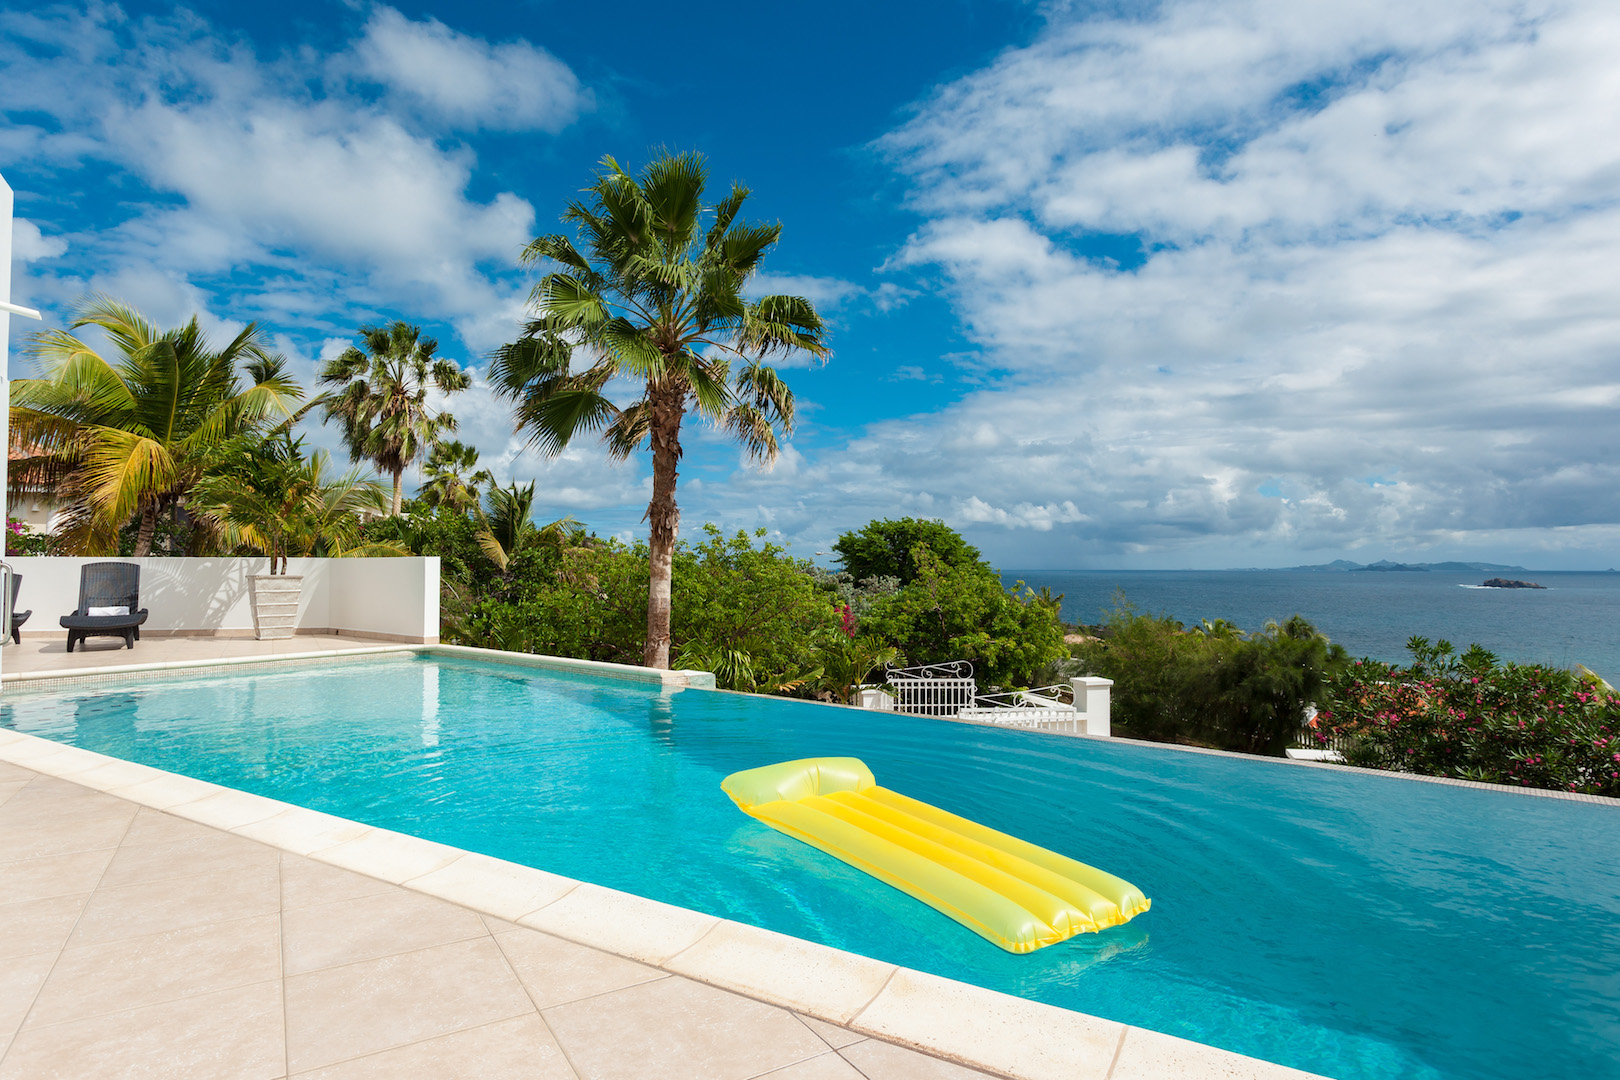 Pool with view of Beach